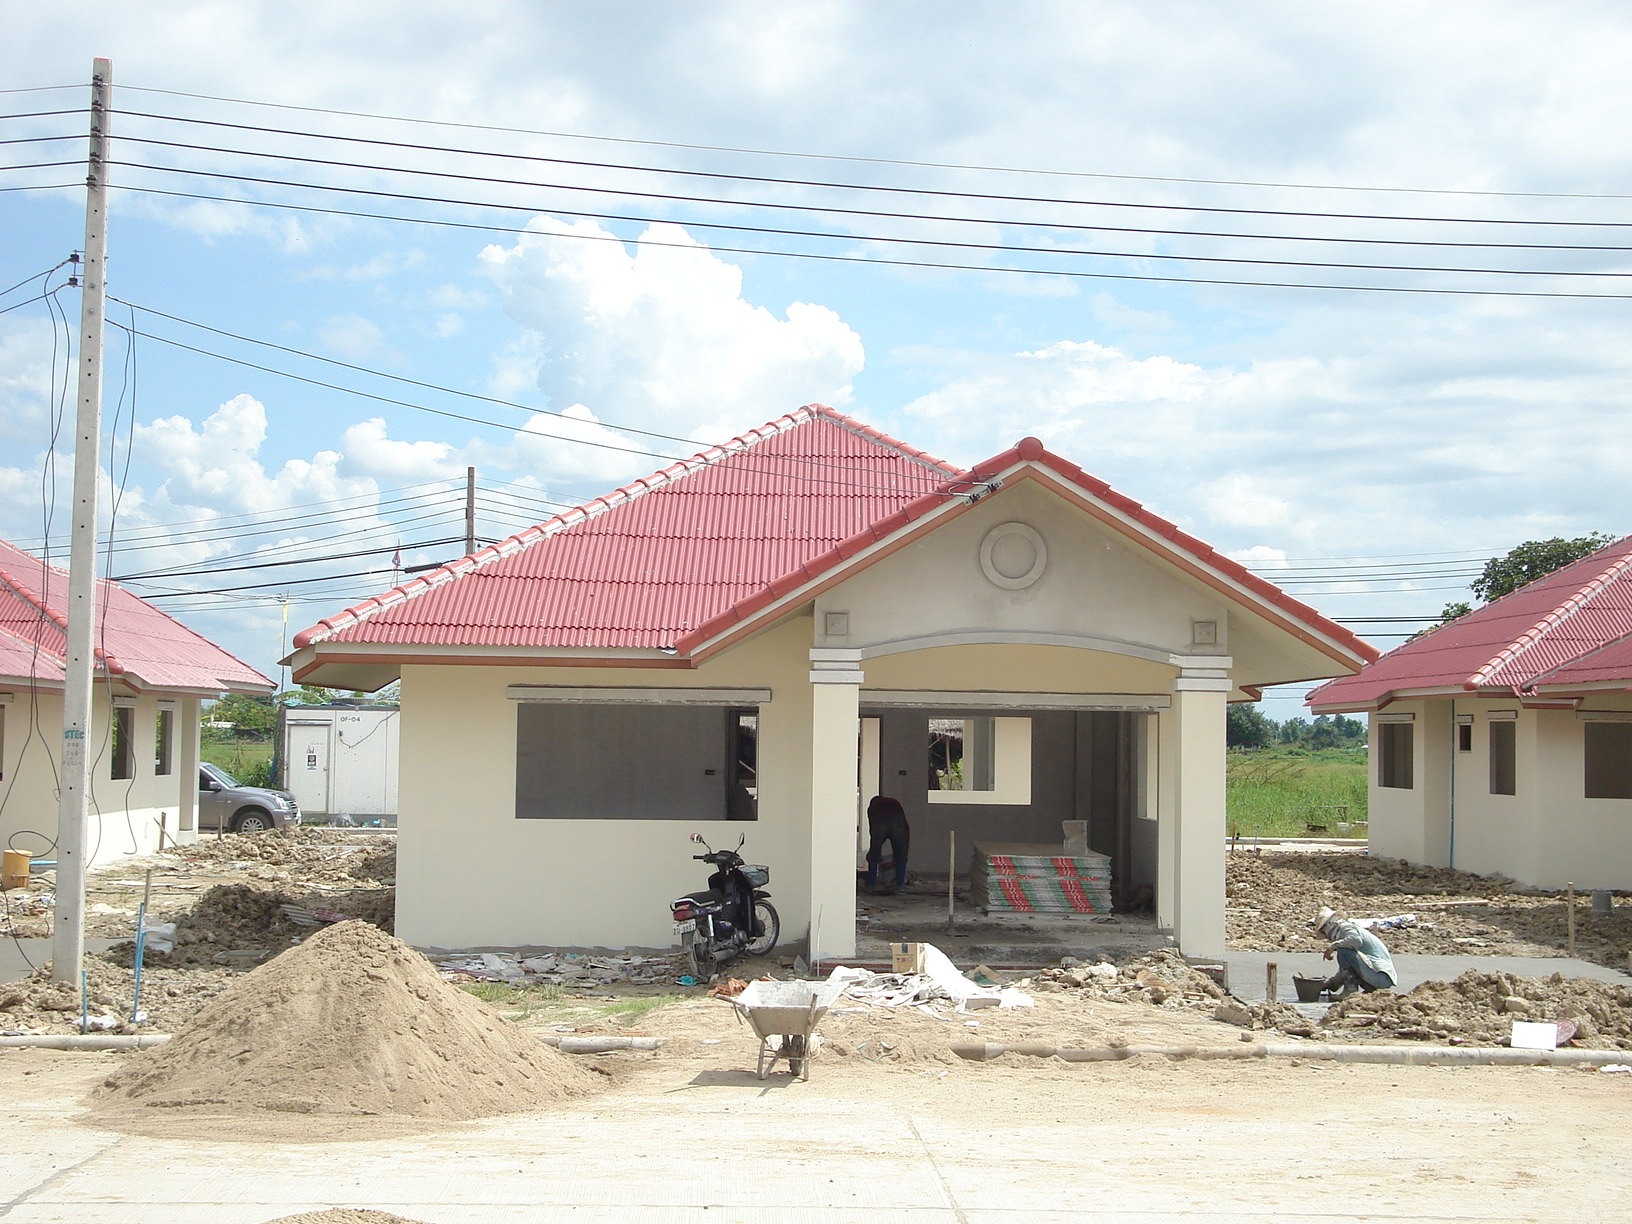 File under construction thai modern wikimedia for Small house design thailand